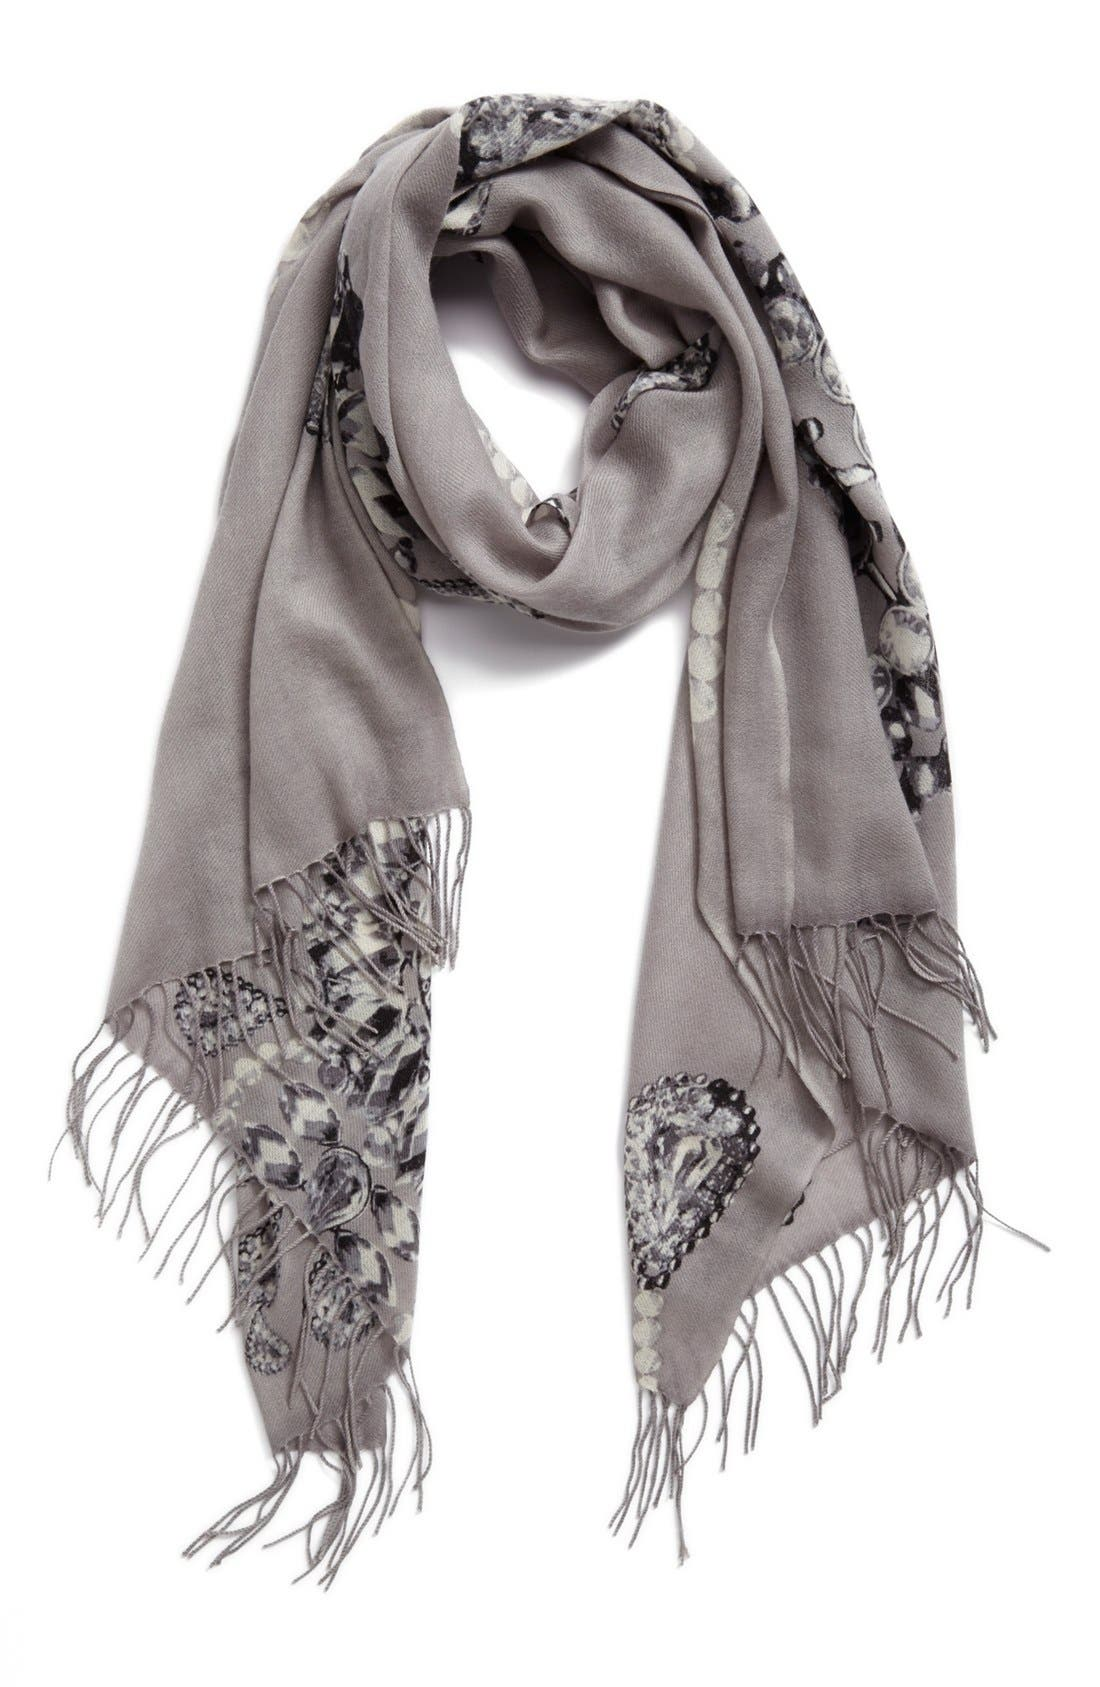 NORDSTROM 'Romantic Jewels' Wool & Cashmere Scarf, Main, color, 020